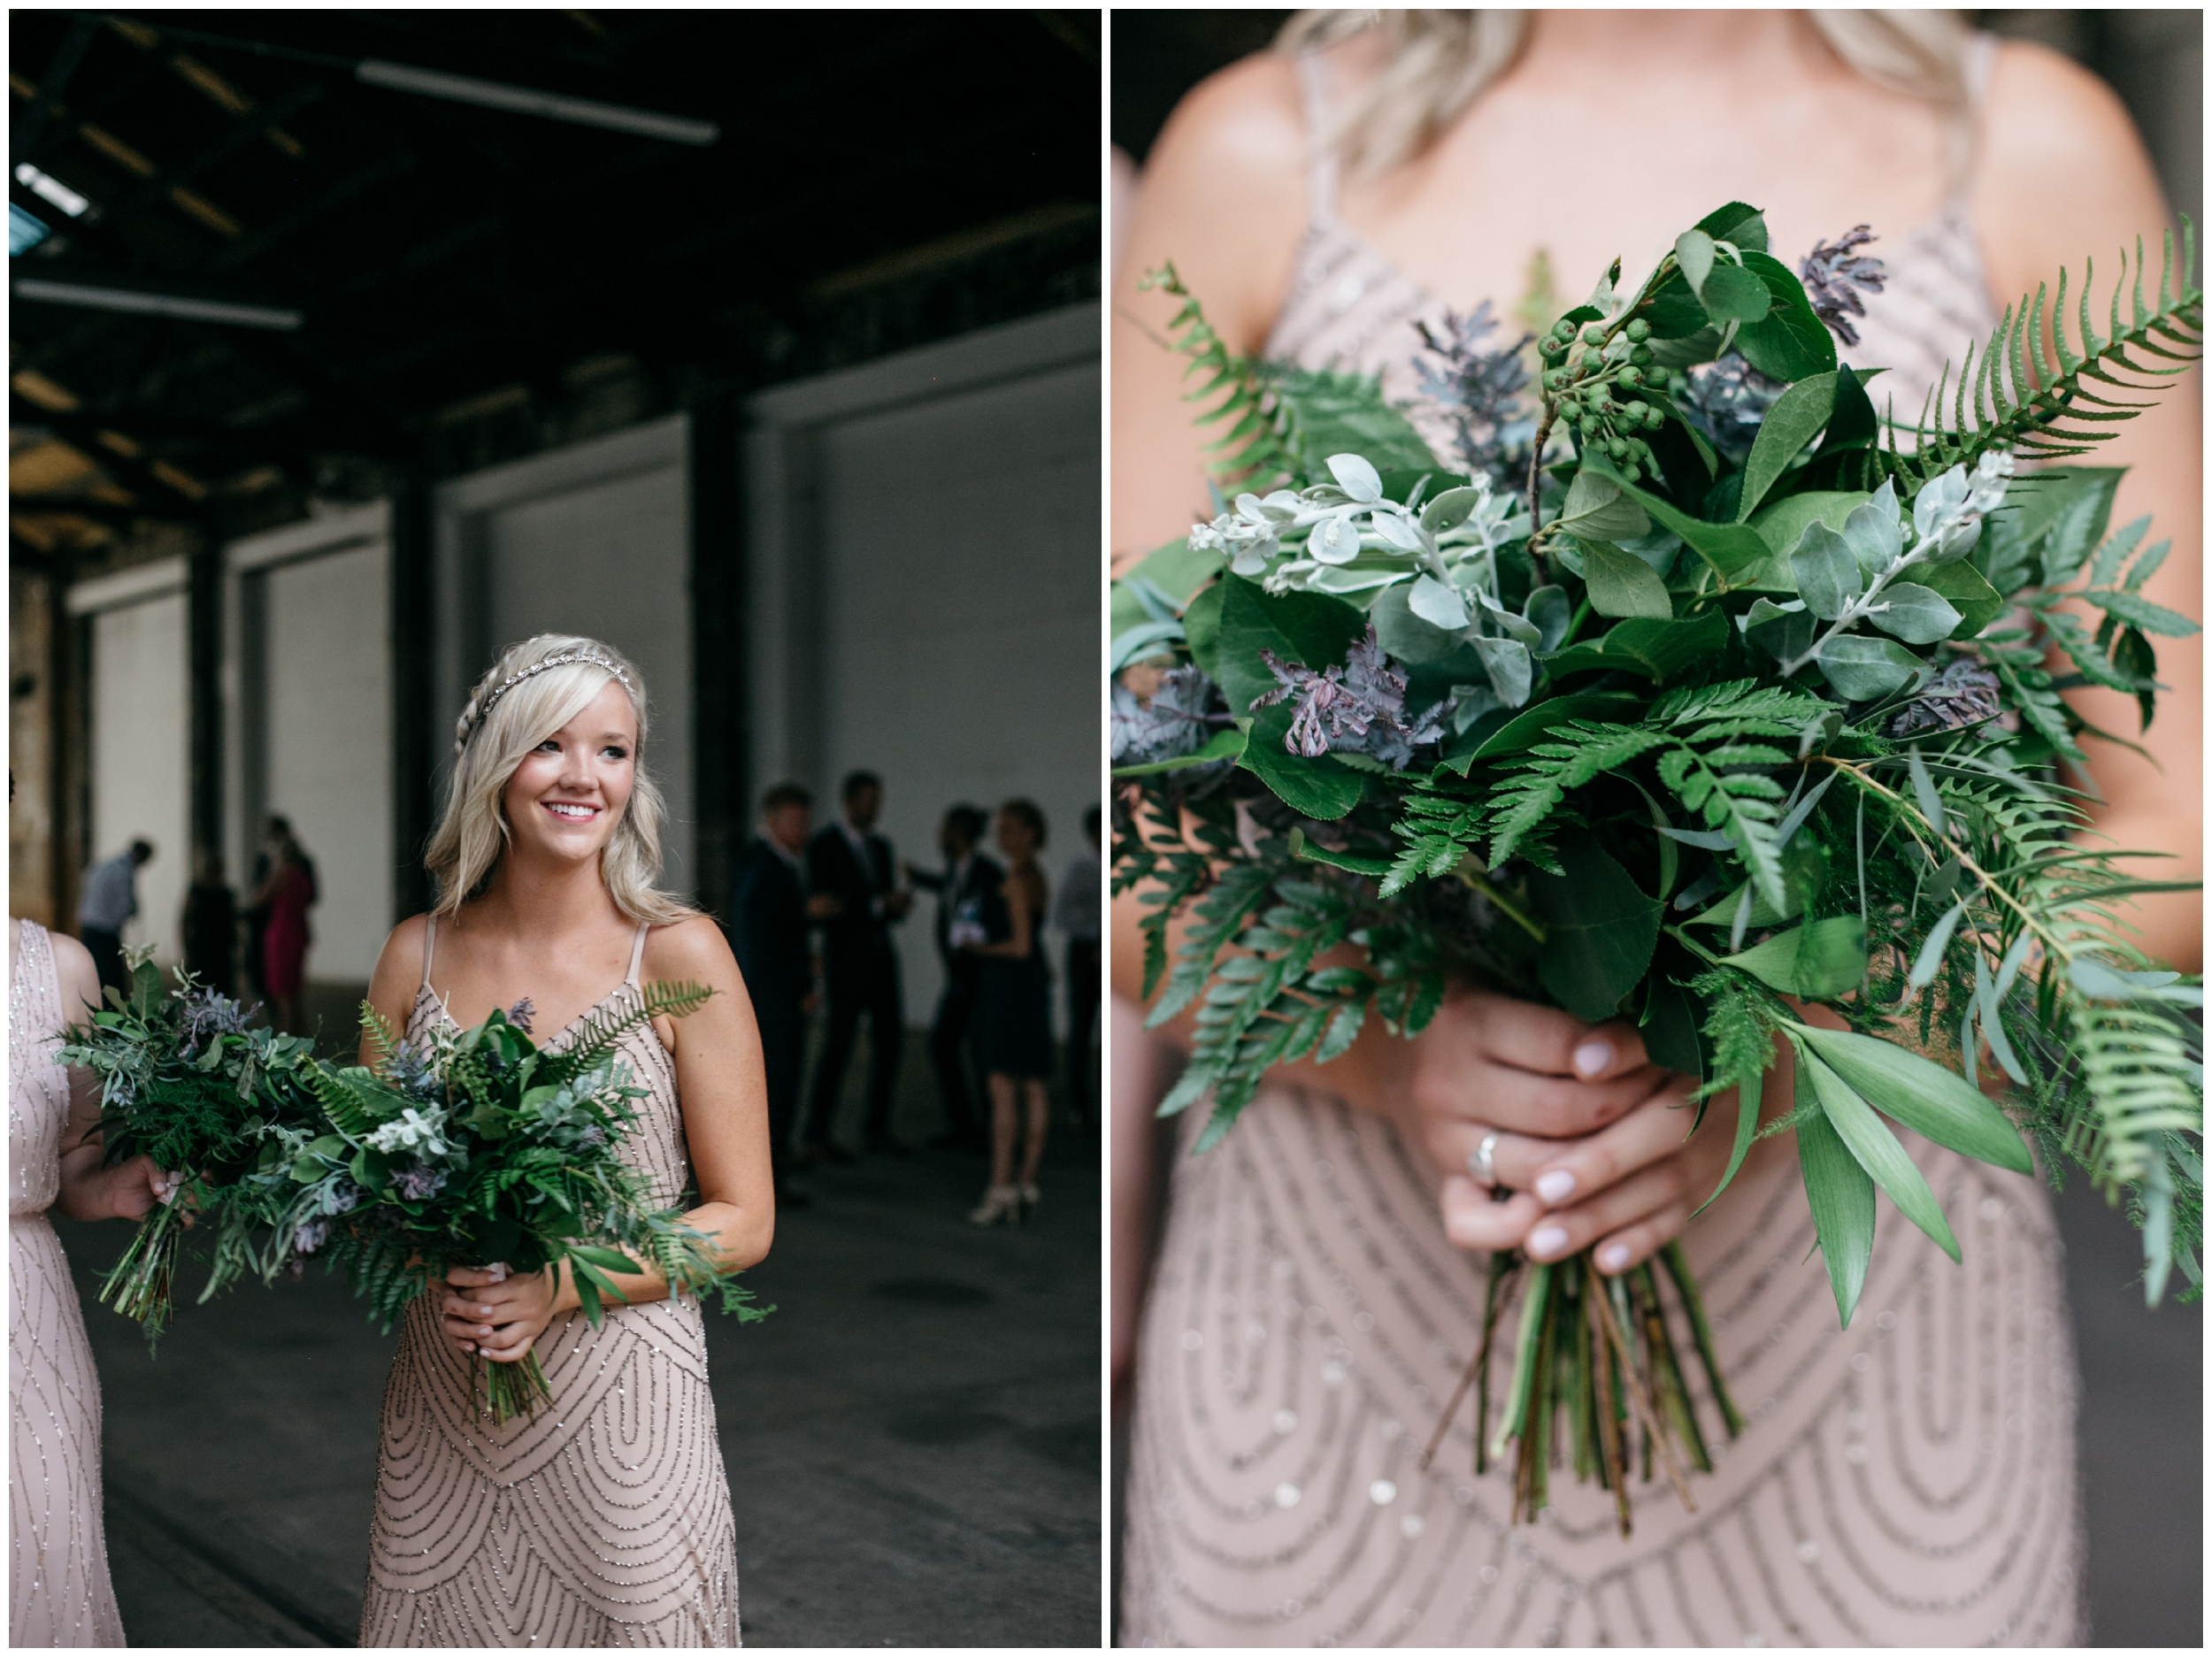 Fern bridesmaid bouquet at the NP Event Space